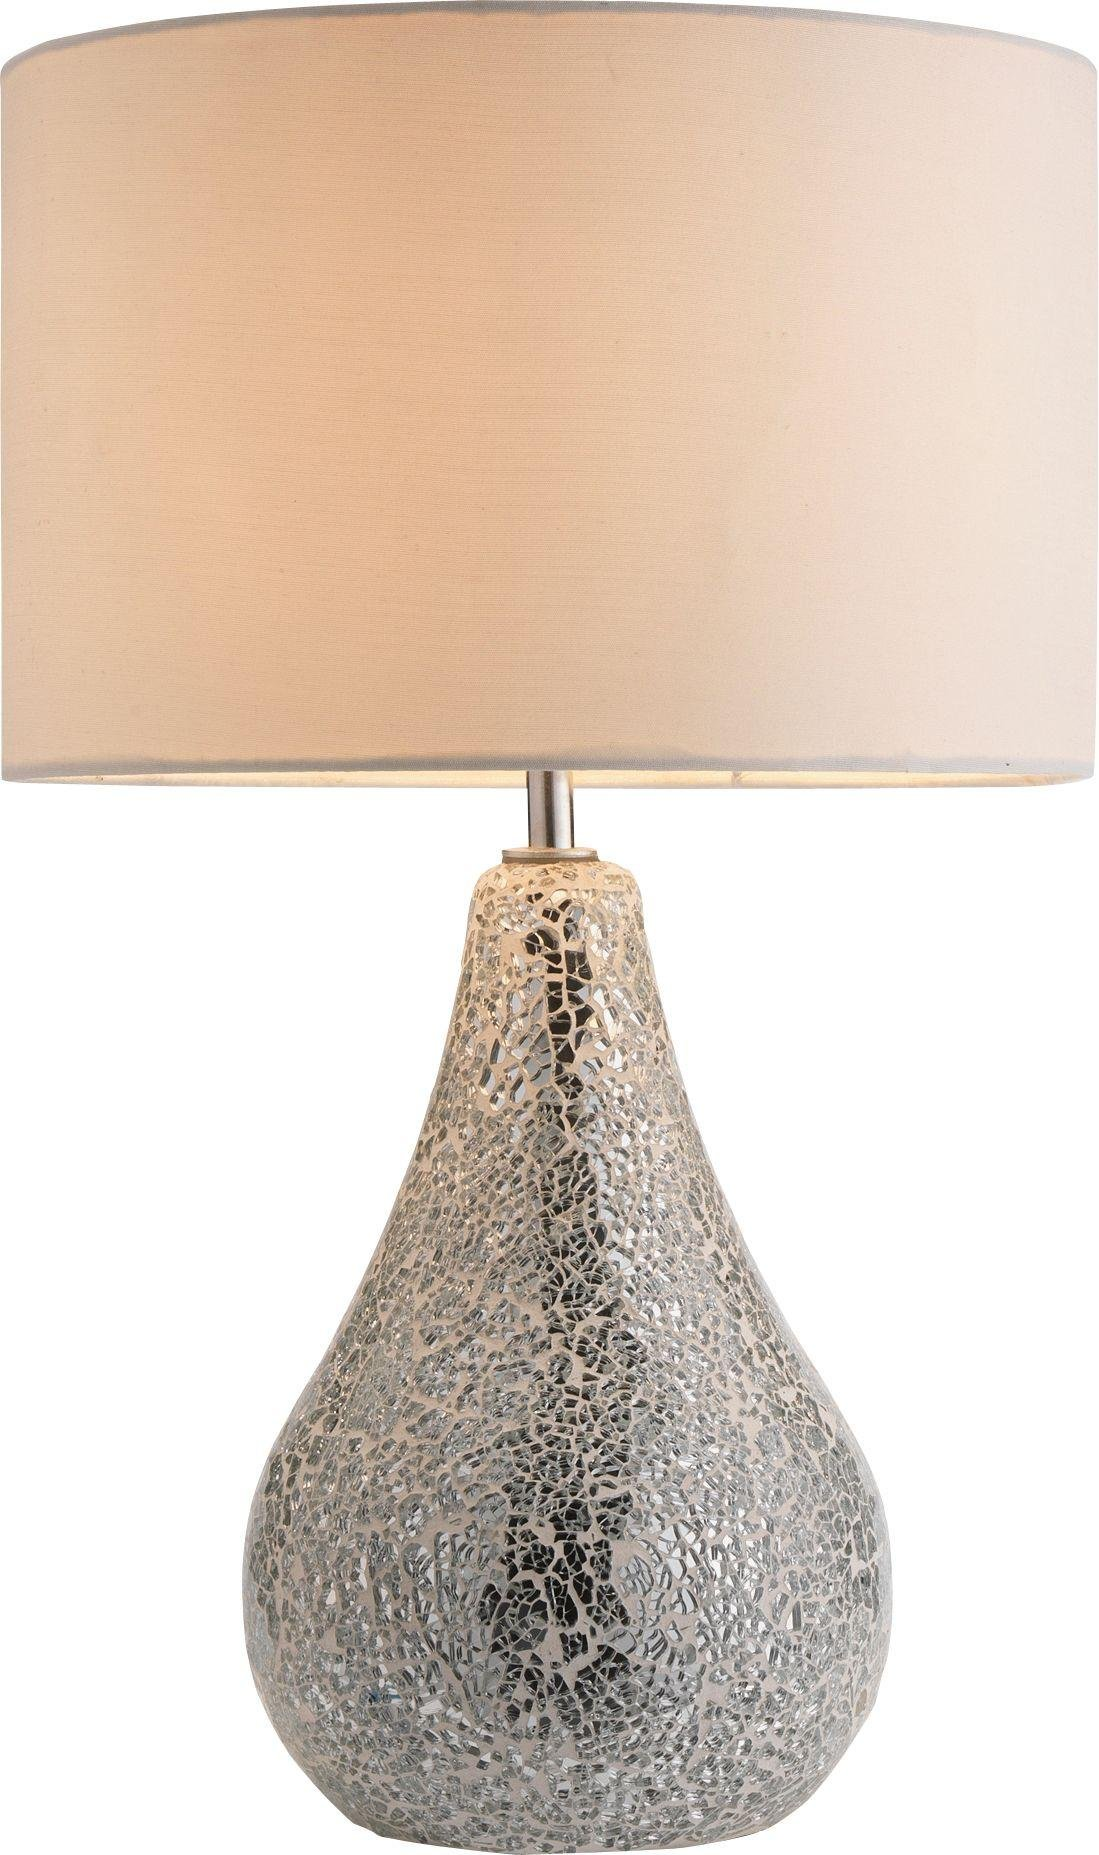 Heart of House - Eloise Crackle Finish - Table Lamp - Silver